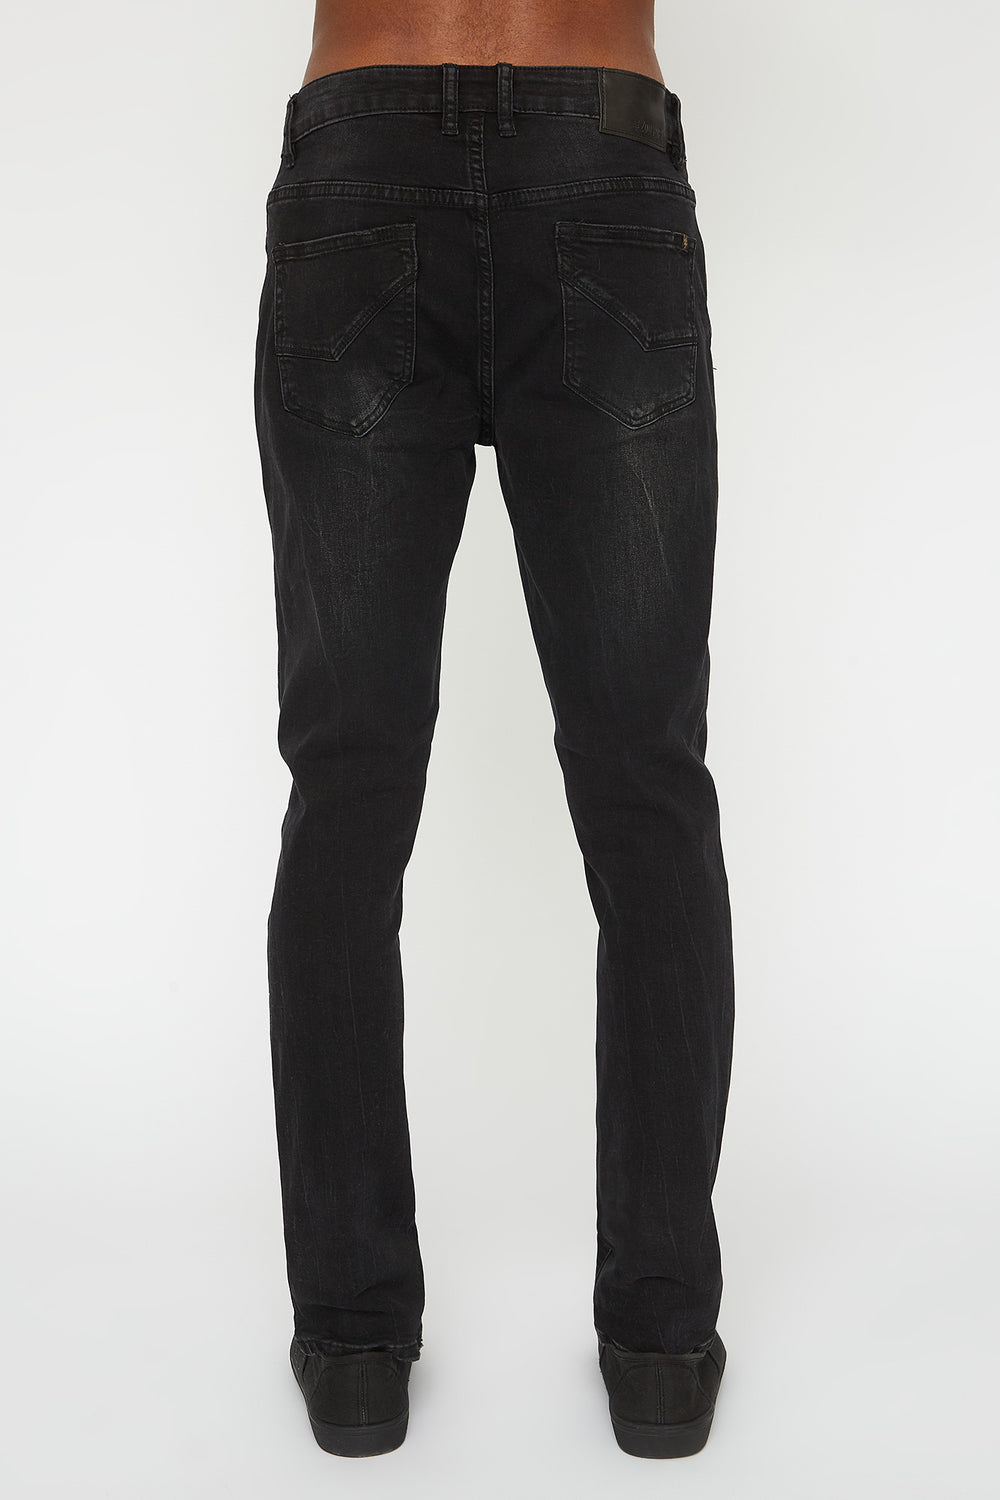 Zoo York Mens Distressed Black Stretch Skinny Jeans Black